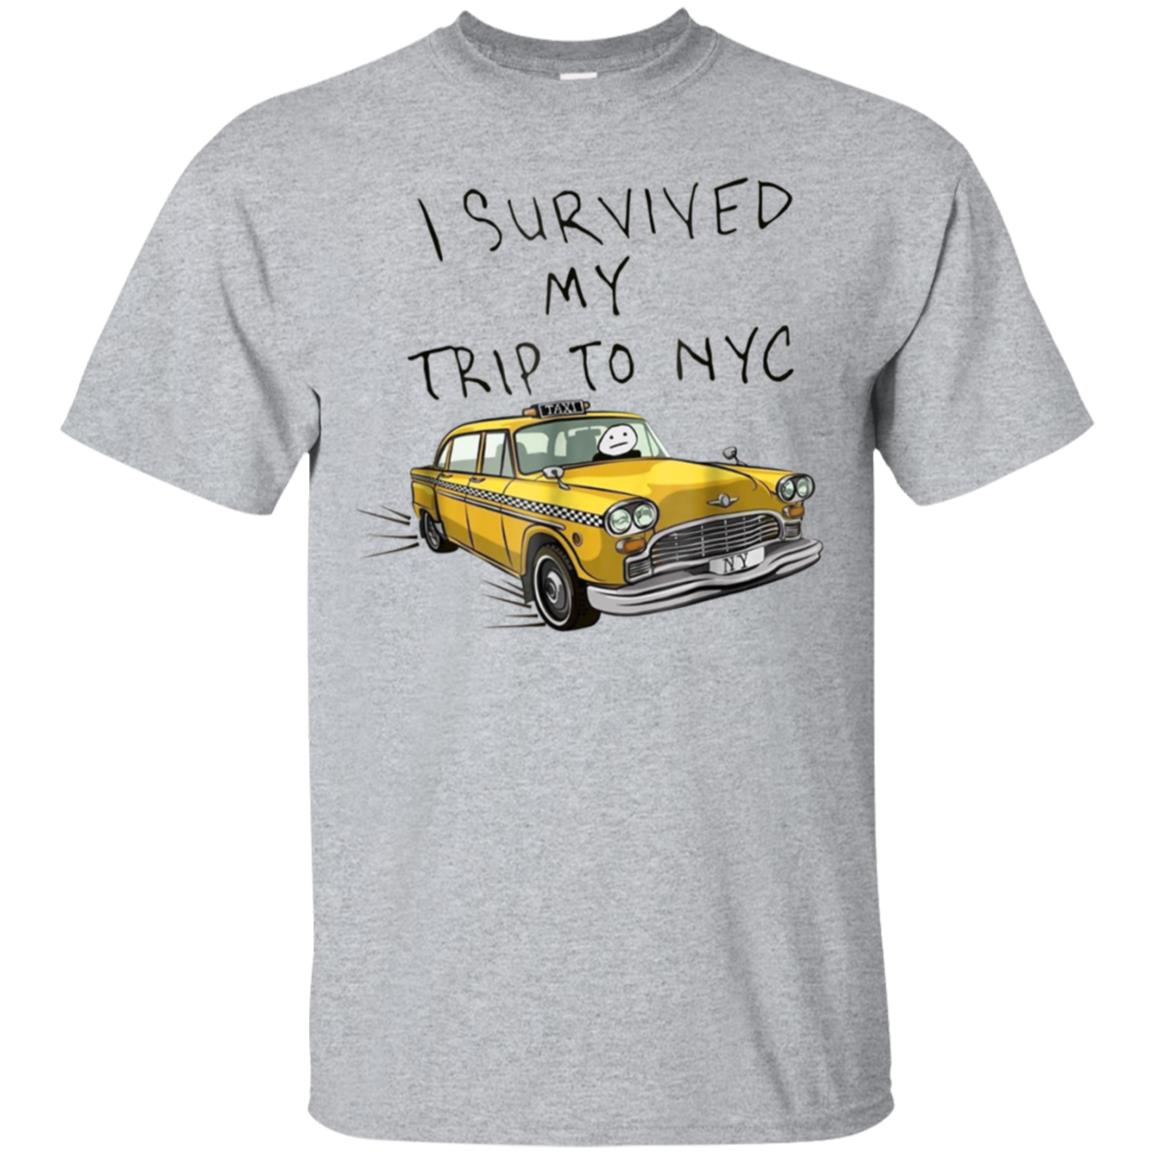 I survived my trip to NYC tshirt 99promocode